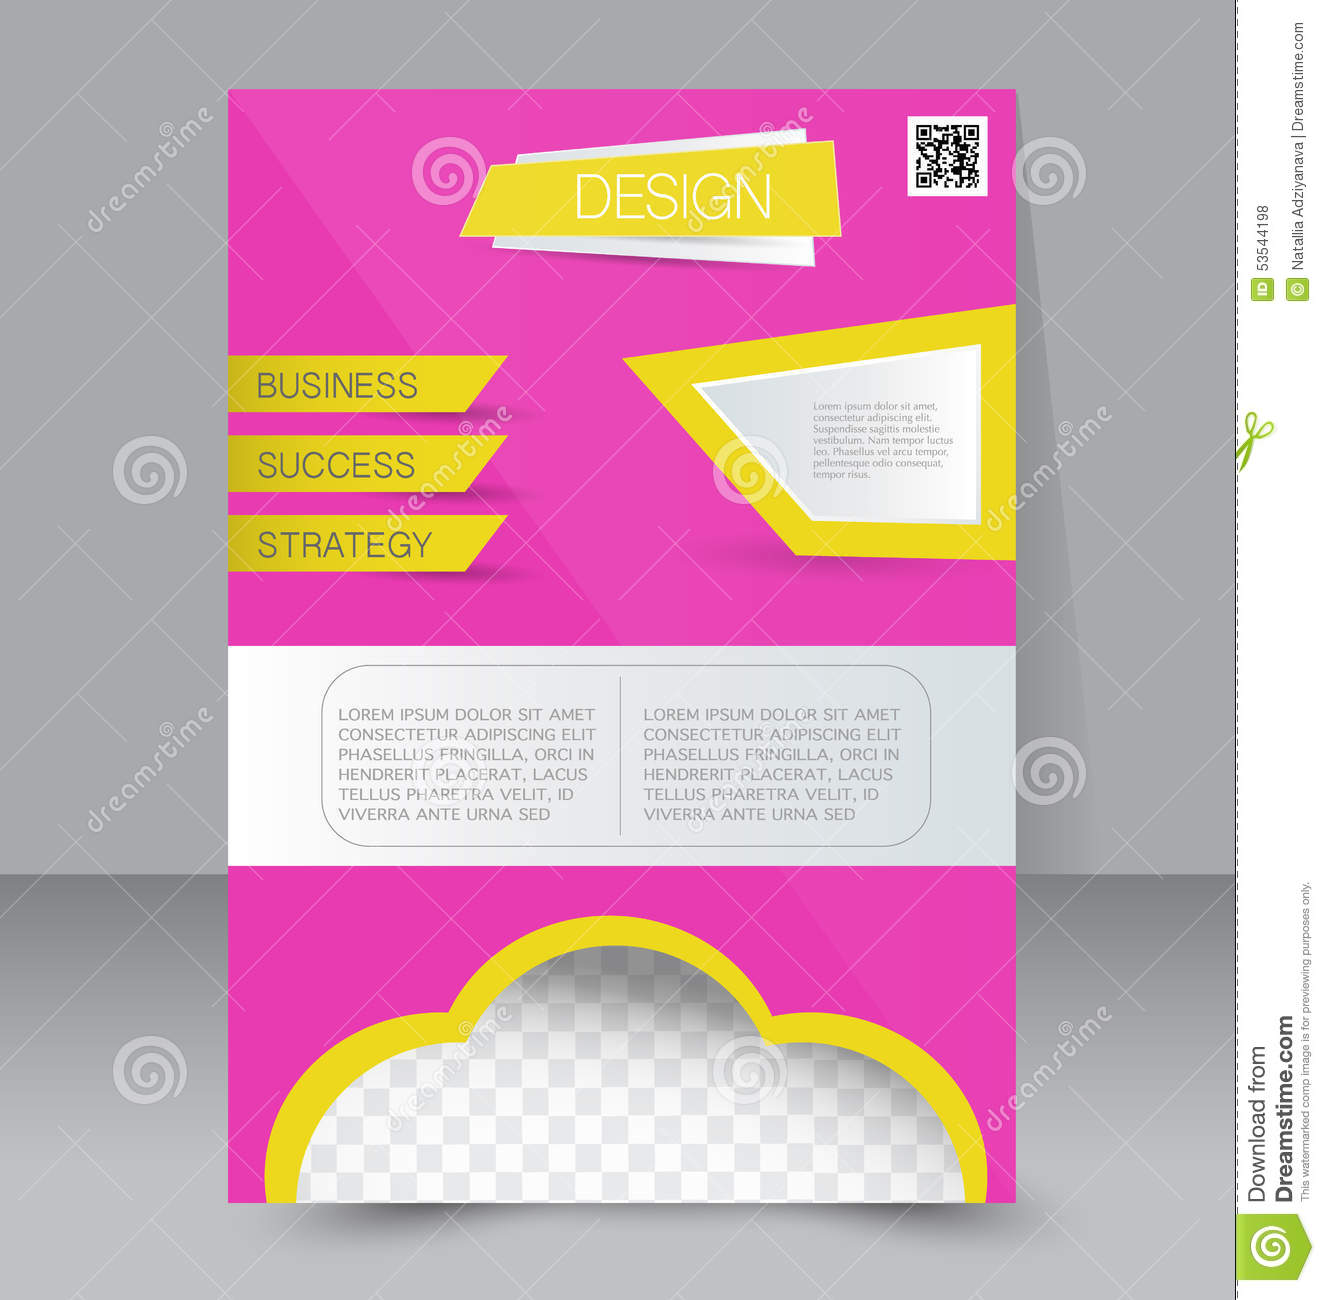 education flyer template education flyer template videotekaalex tk